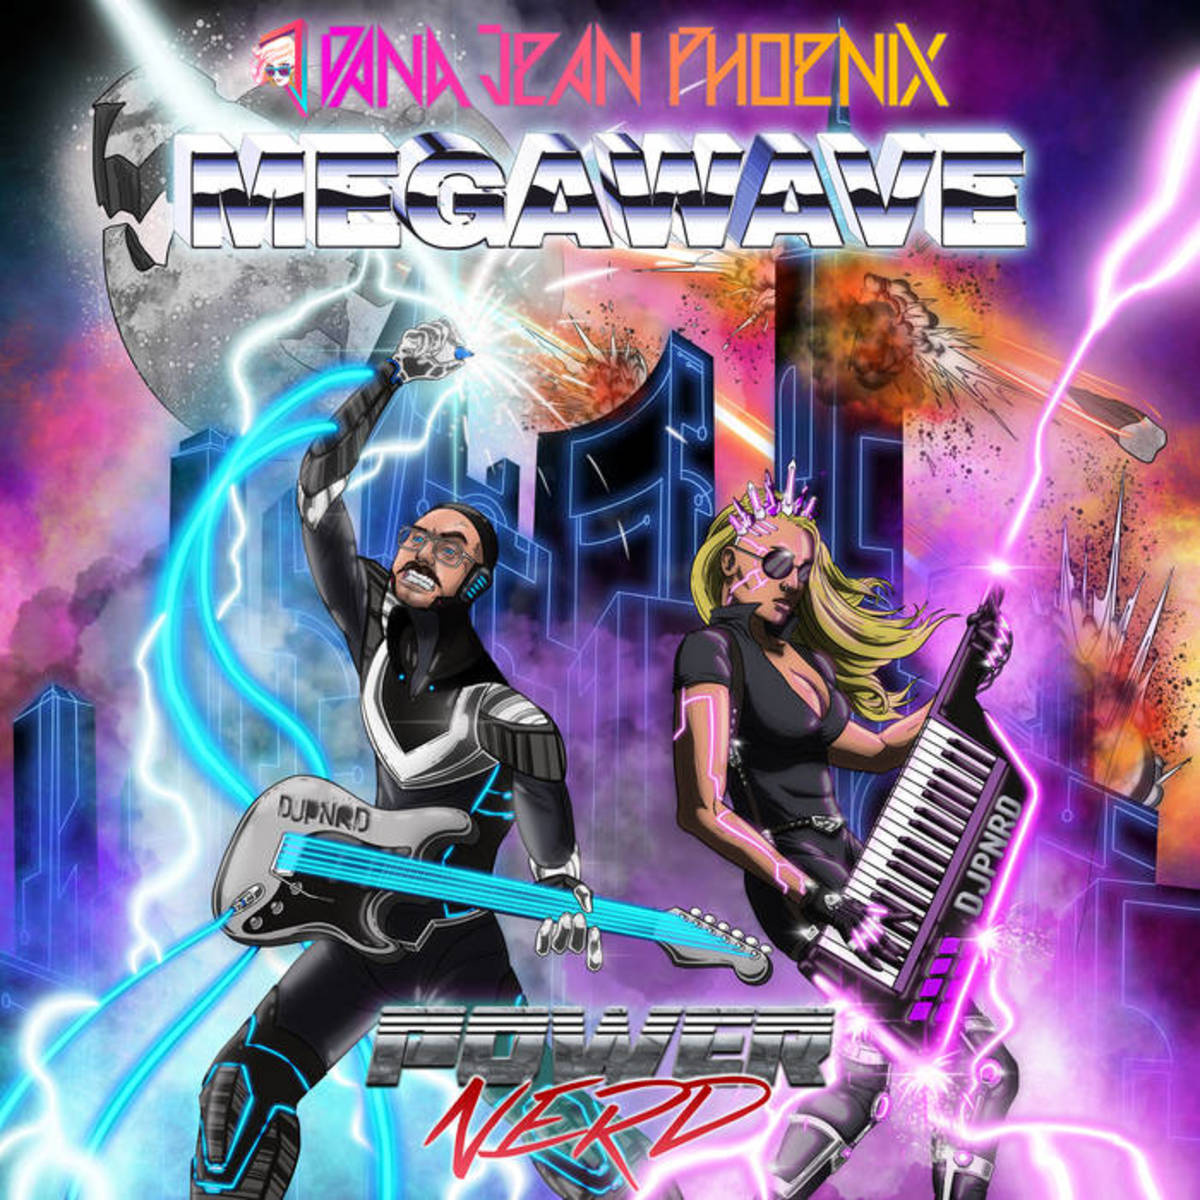 """Synth Single Review: """"Figure Me Out"""" by Dana Jean Phoenix and Powernerd"""